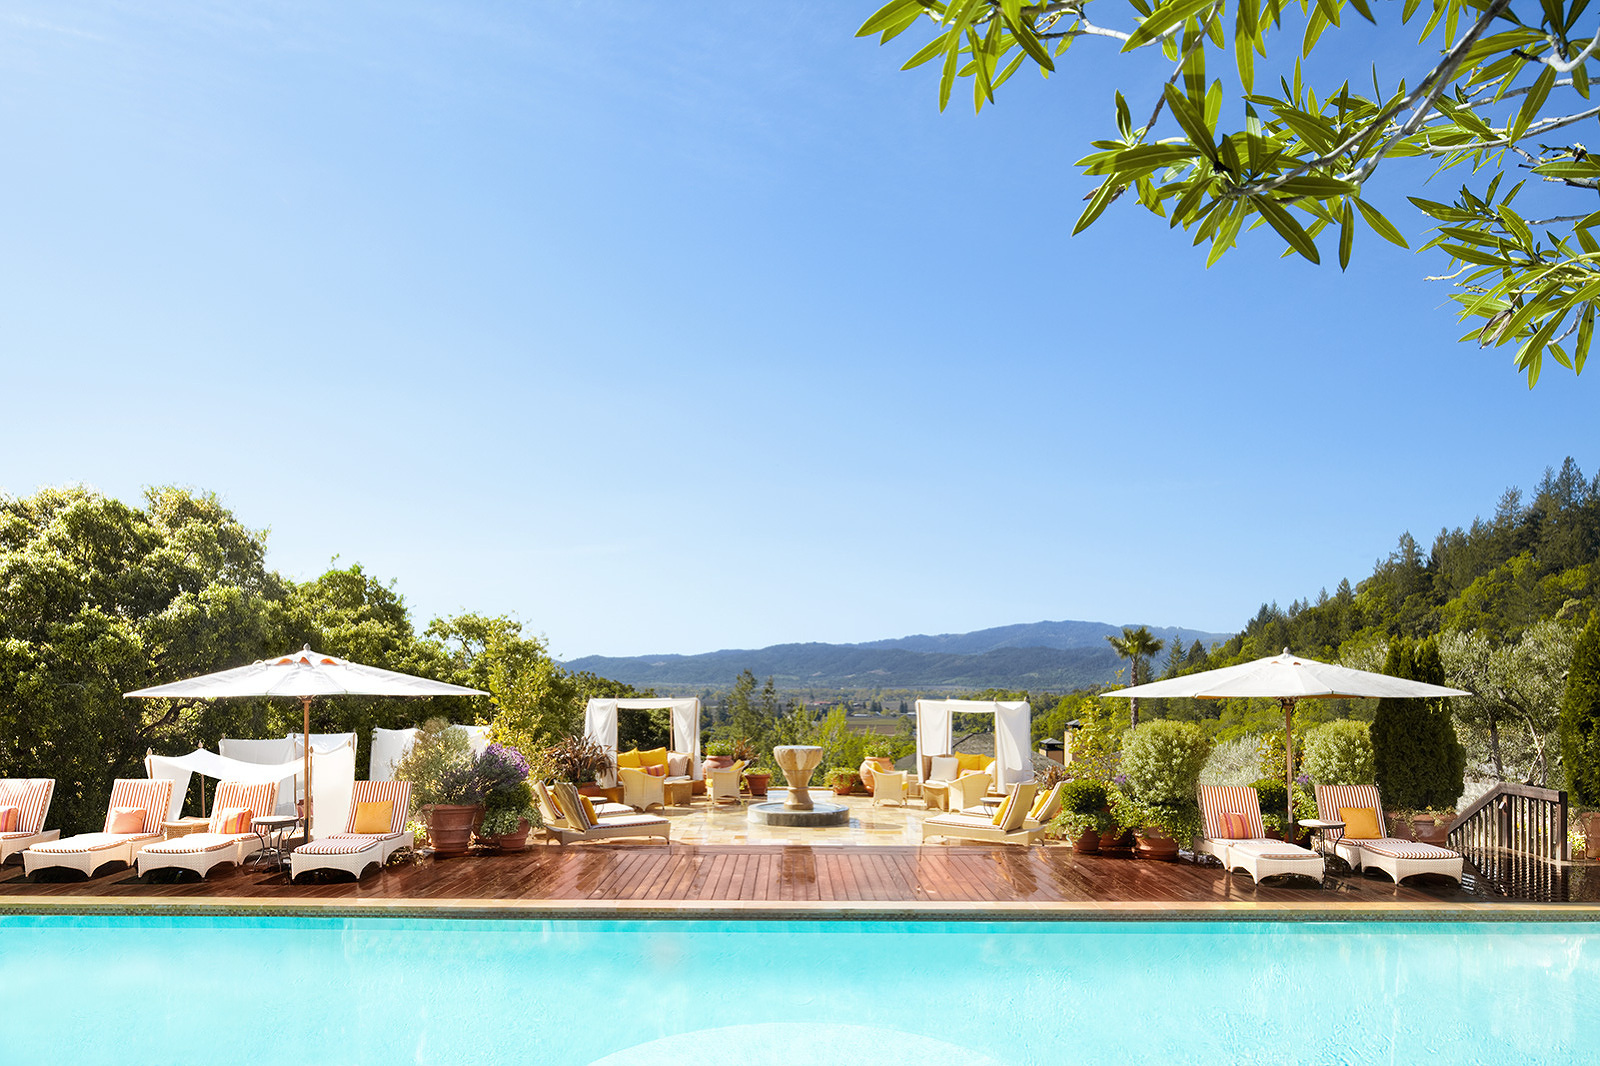 Pool at Auberge Du Soleil, Napa, CA  | Trinette+Chris Photographers